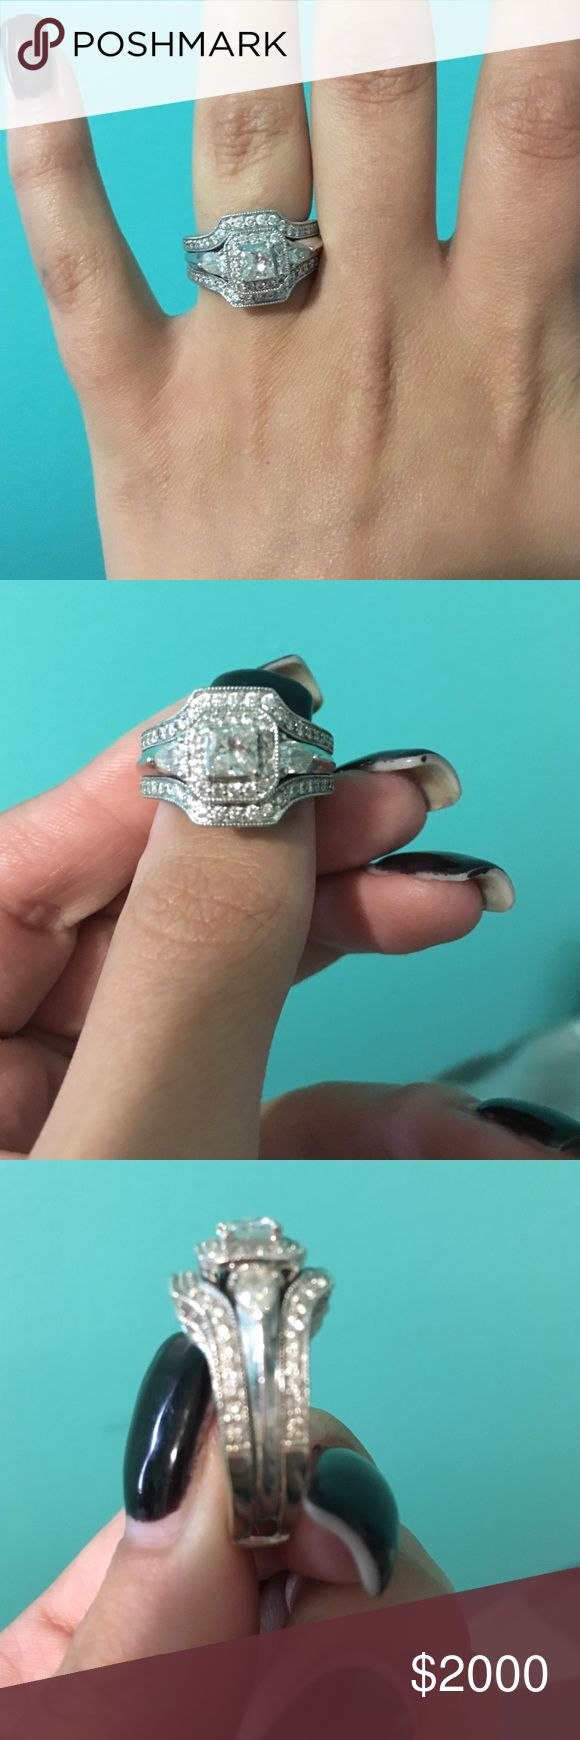 Engagement & Wedding ring set! 2Carats, inspected and insured, engagement ring and wedding band set, vintage look. 3 years old, cleaned. NO trades! Make an offer! :) Jewelry Rings